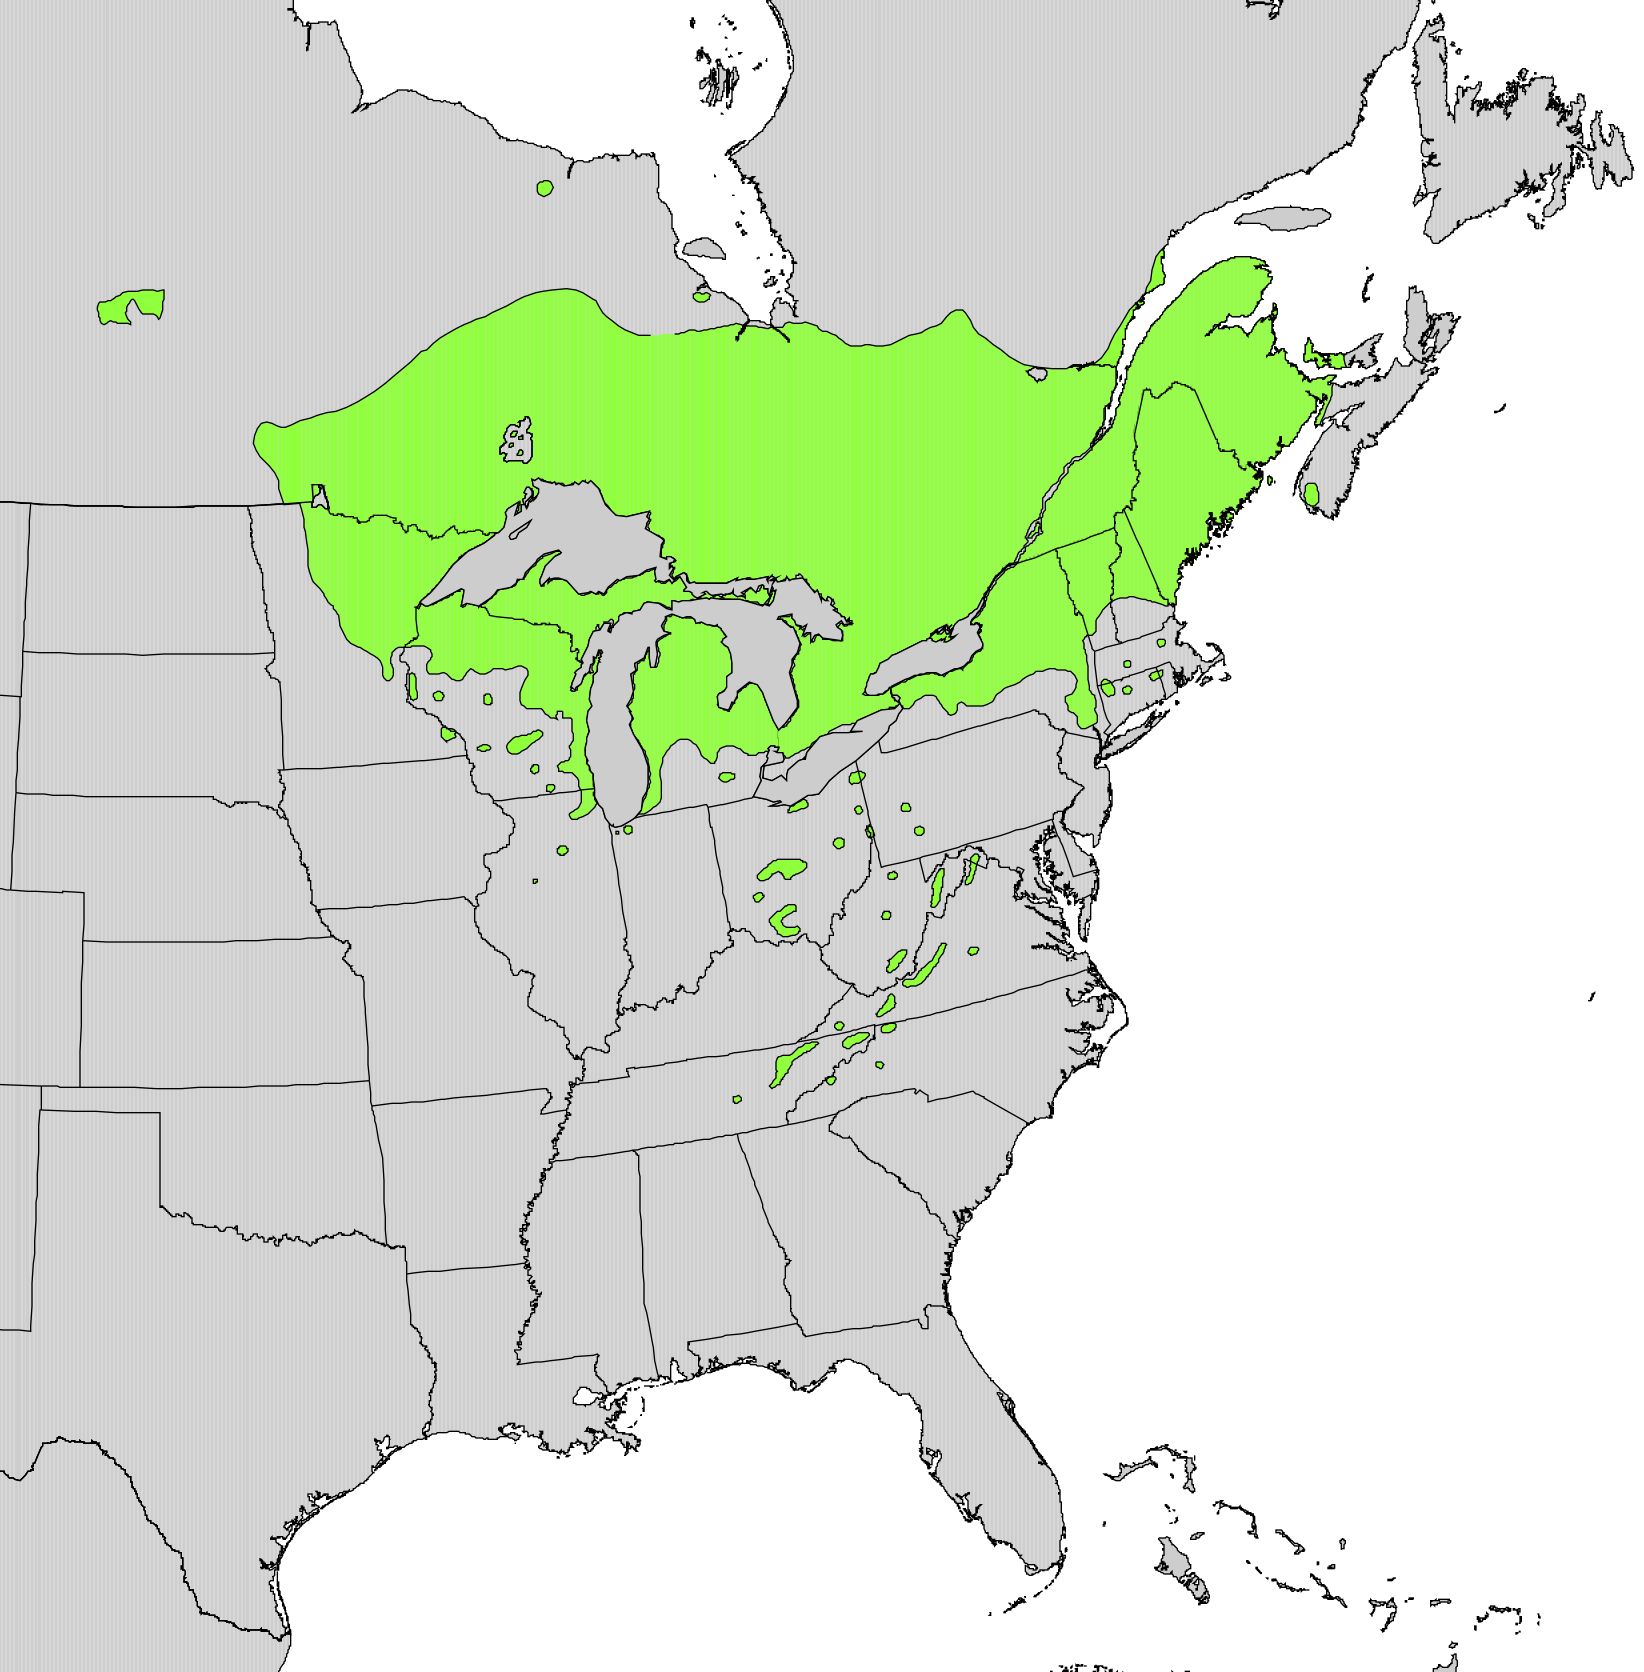 http://upload.wikimedia.org/wikipedia/commons/a/a2/Thuja_occidentalis_range_map.png